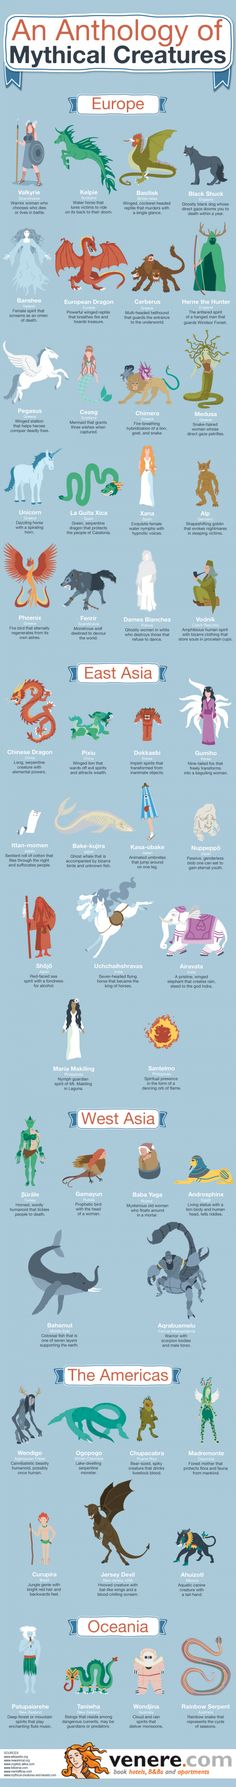 An Anthology of Mythical Creatures from Daily Infographic.com